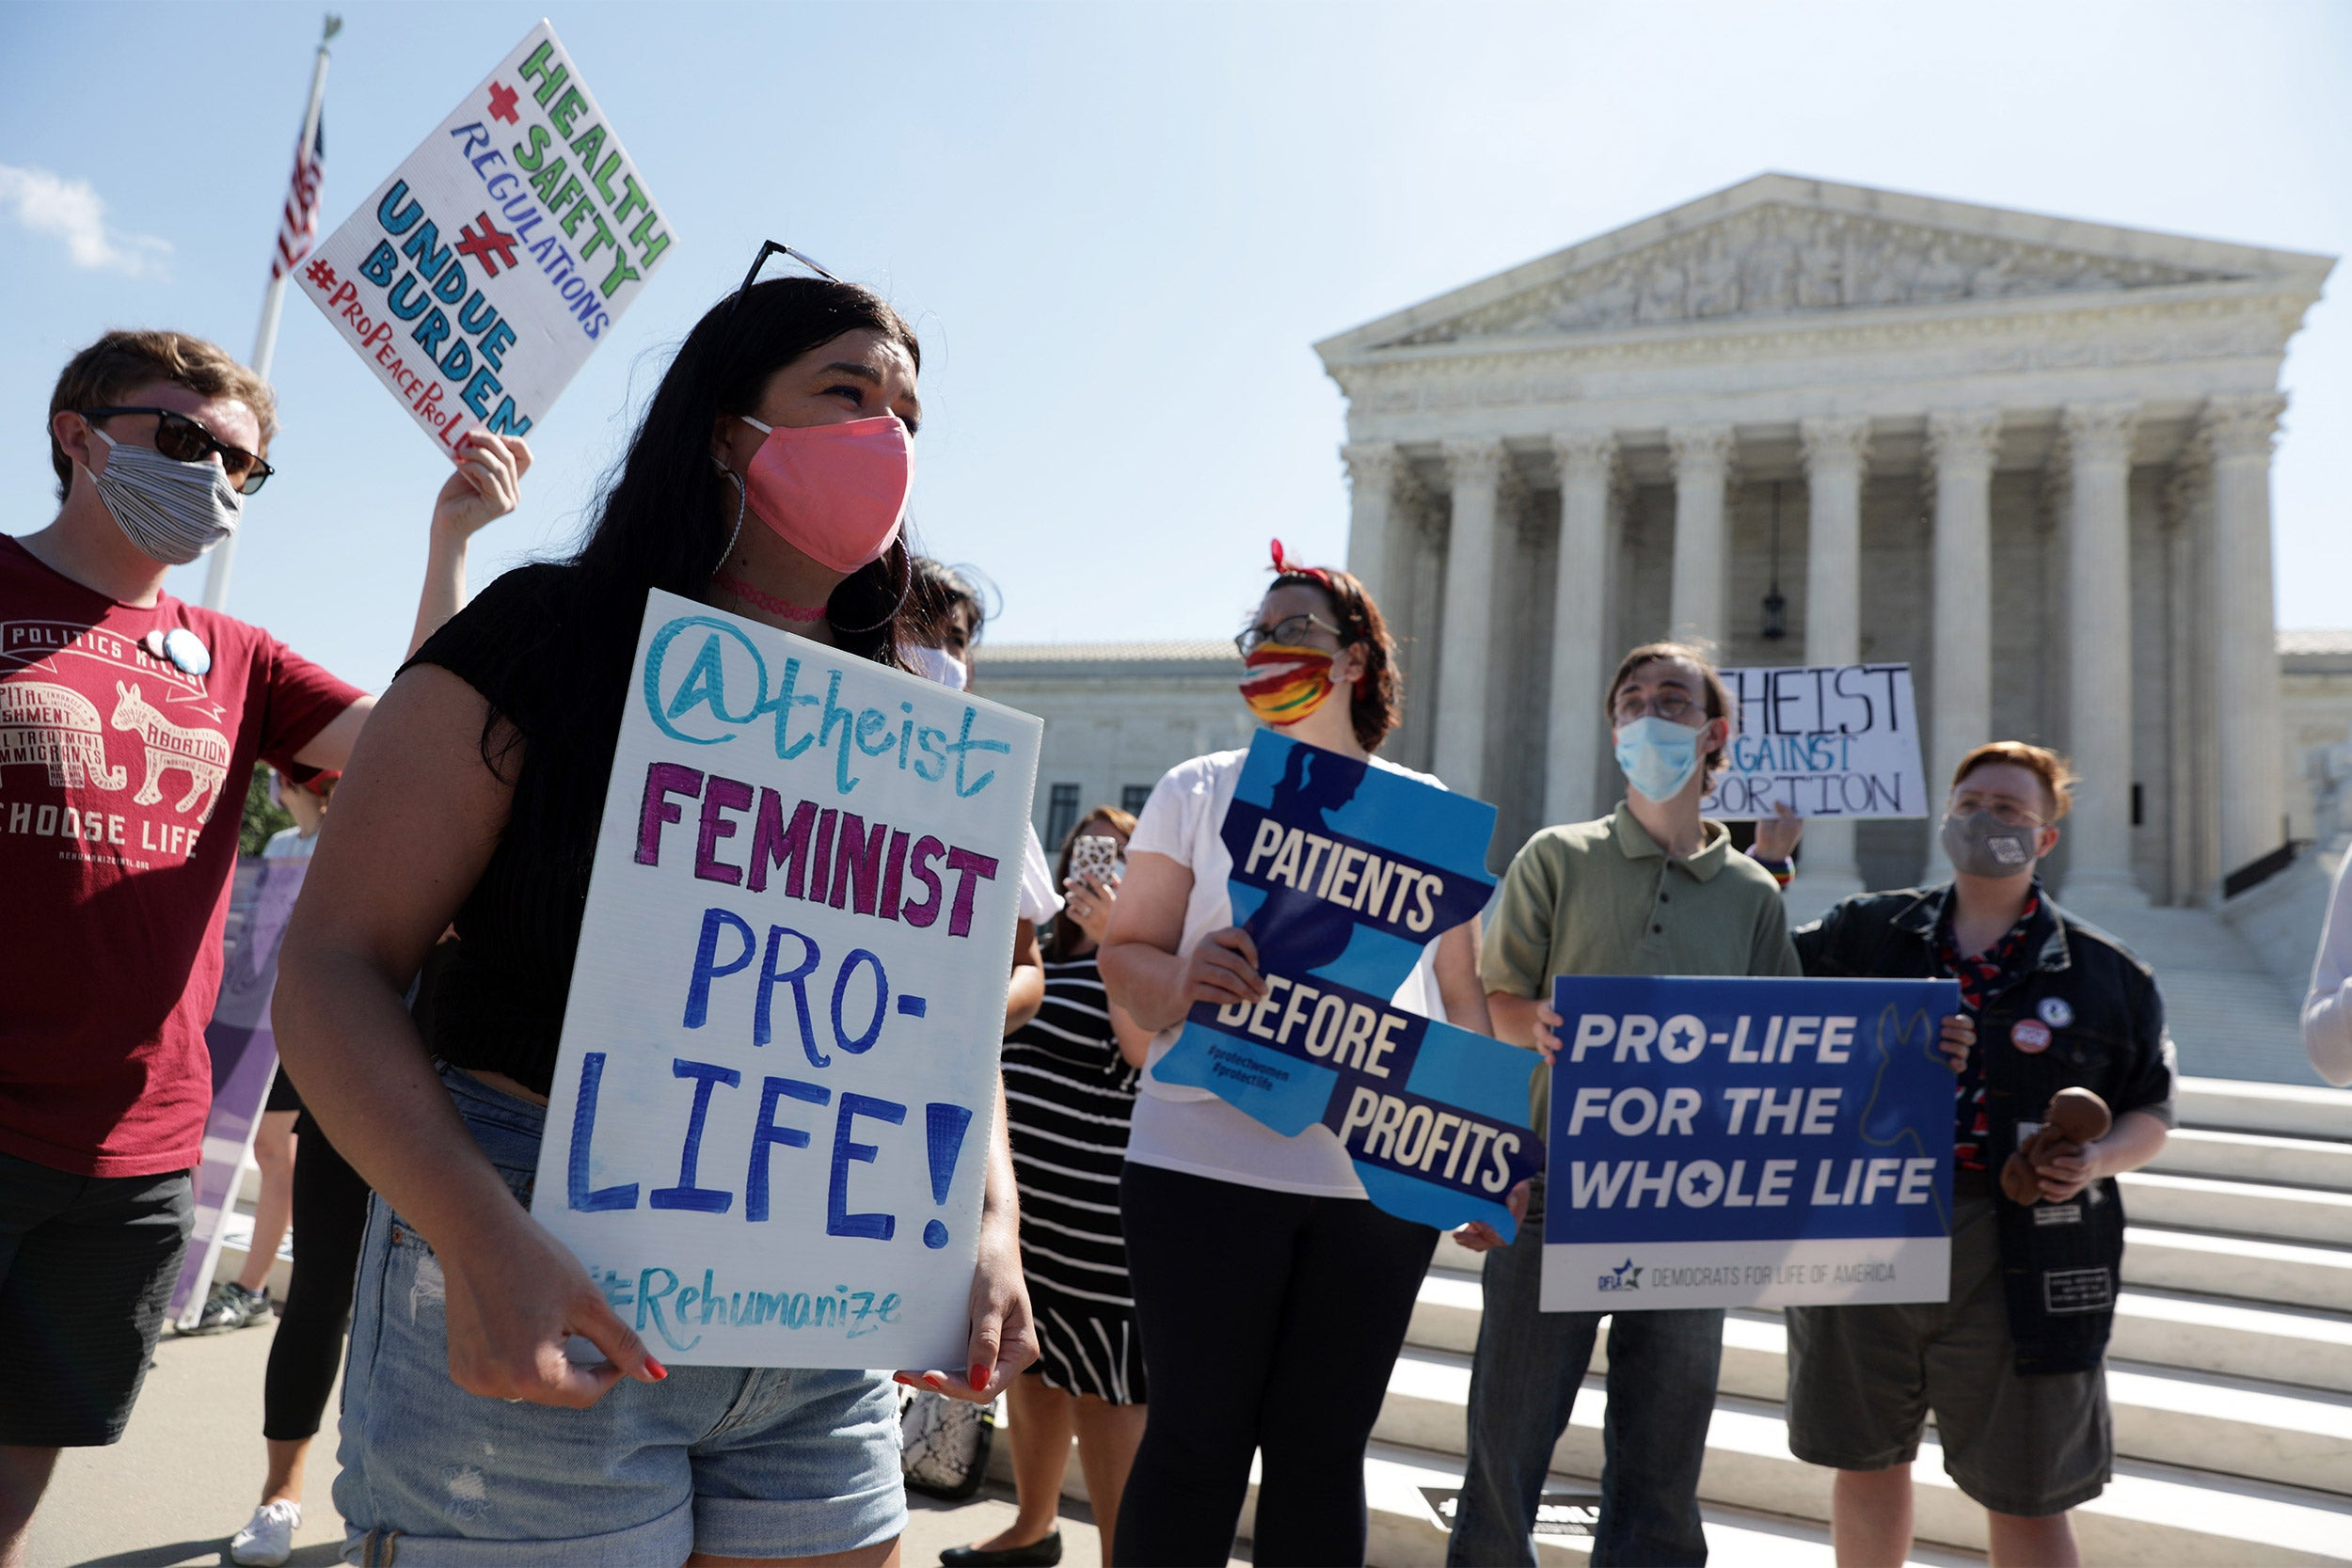 Pro-life activists participate in a demonstration in front of the U.S. Supreme Court on June 29.